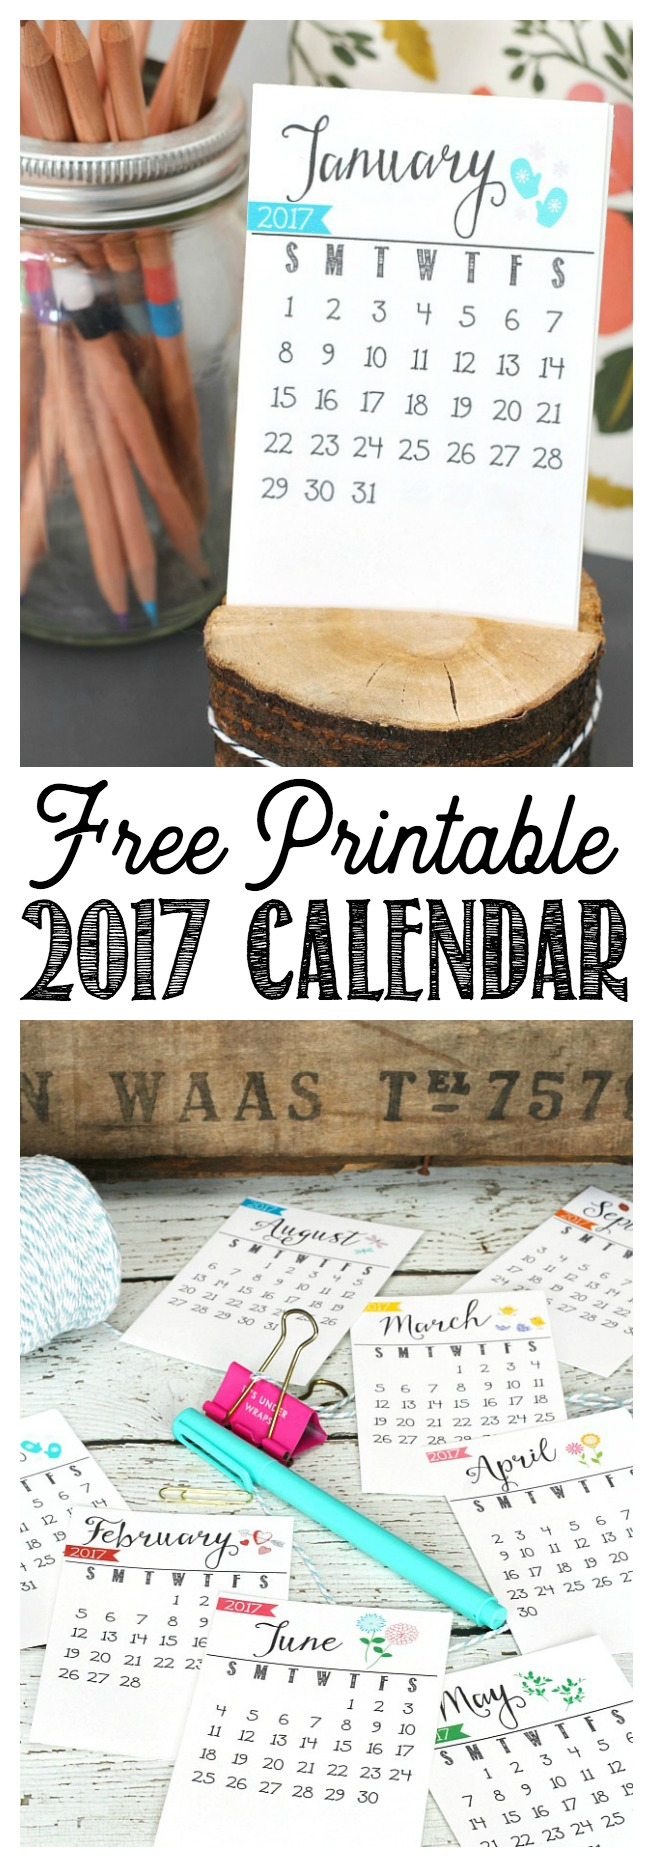 Free printable 2017 calendar. Perfect for your desk or office. Makes a cute gift idea too!